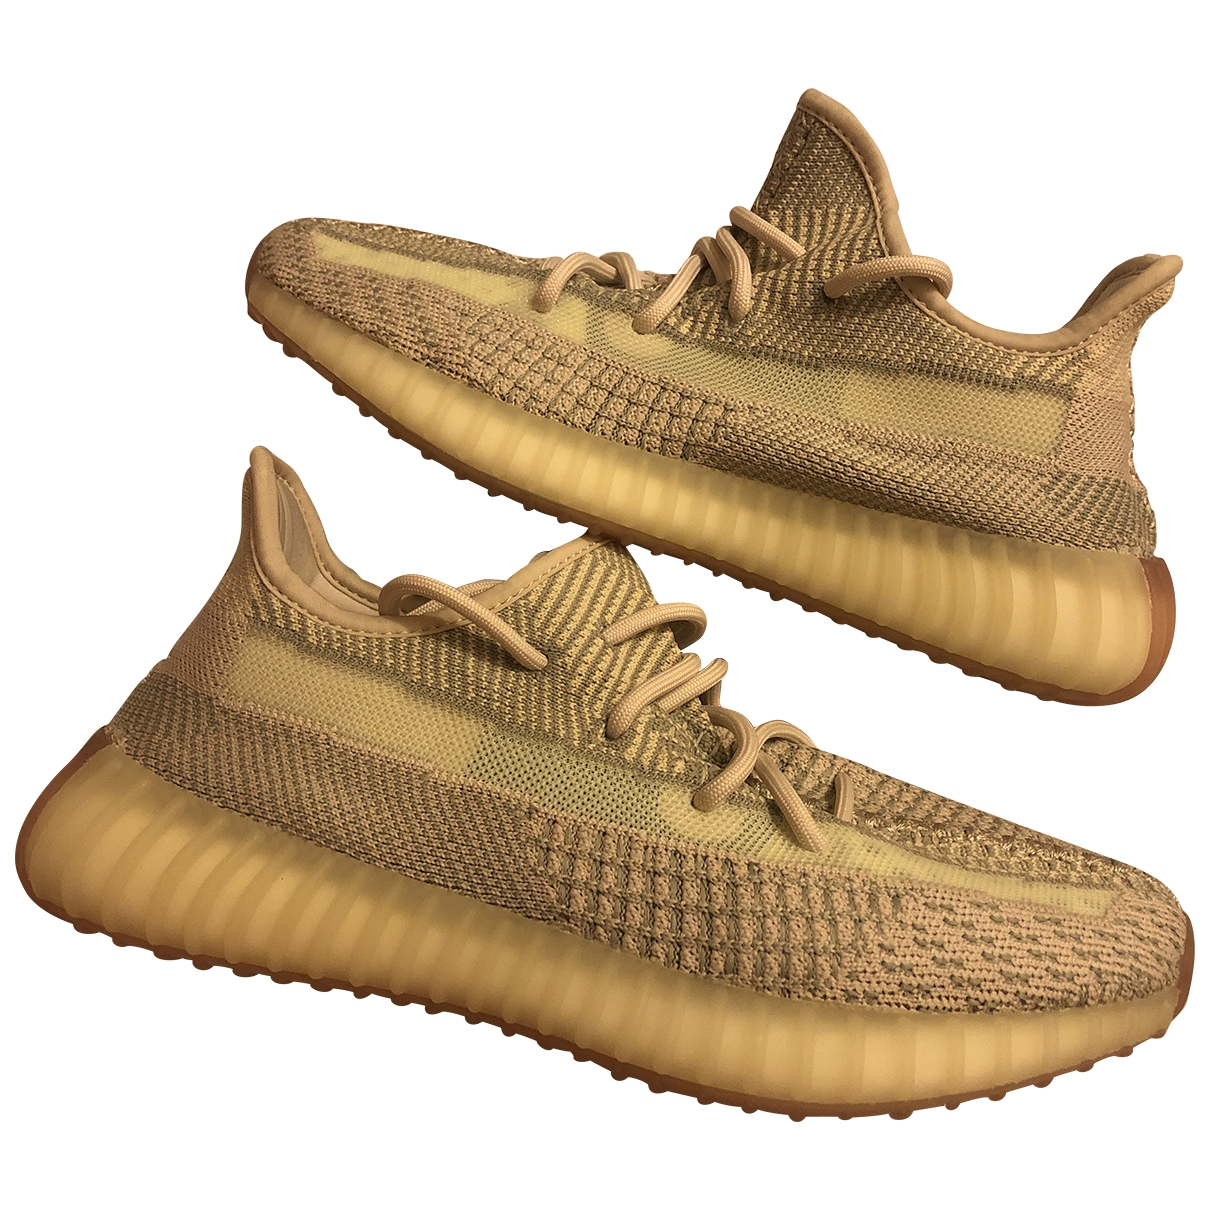 Yeezy X Adidas Boost 350 V2 Sneakers in  Rosa Leinen